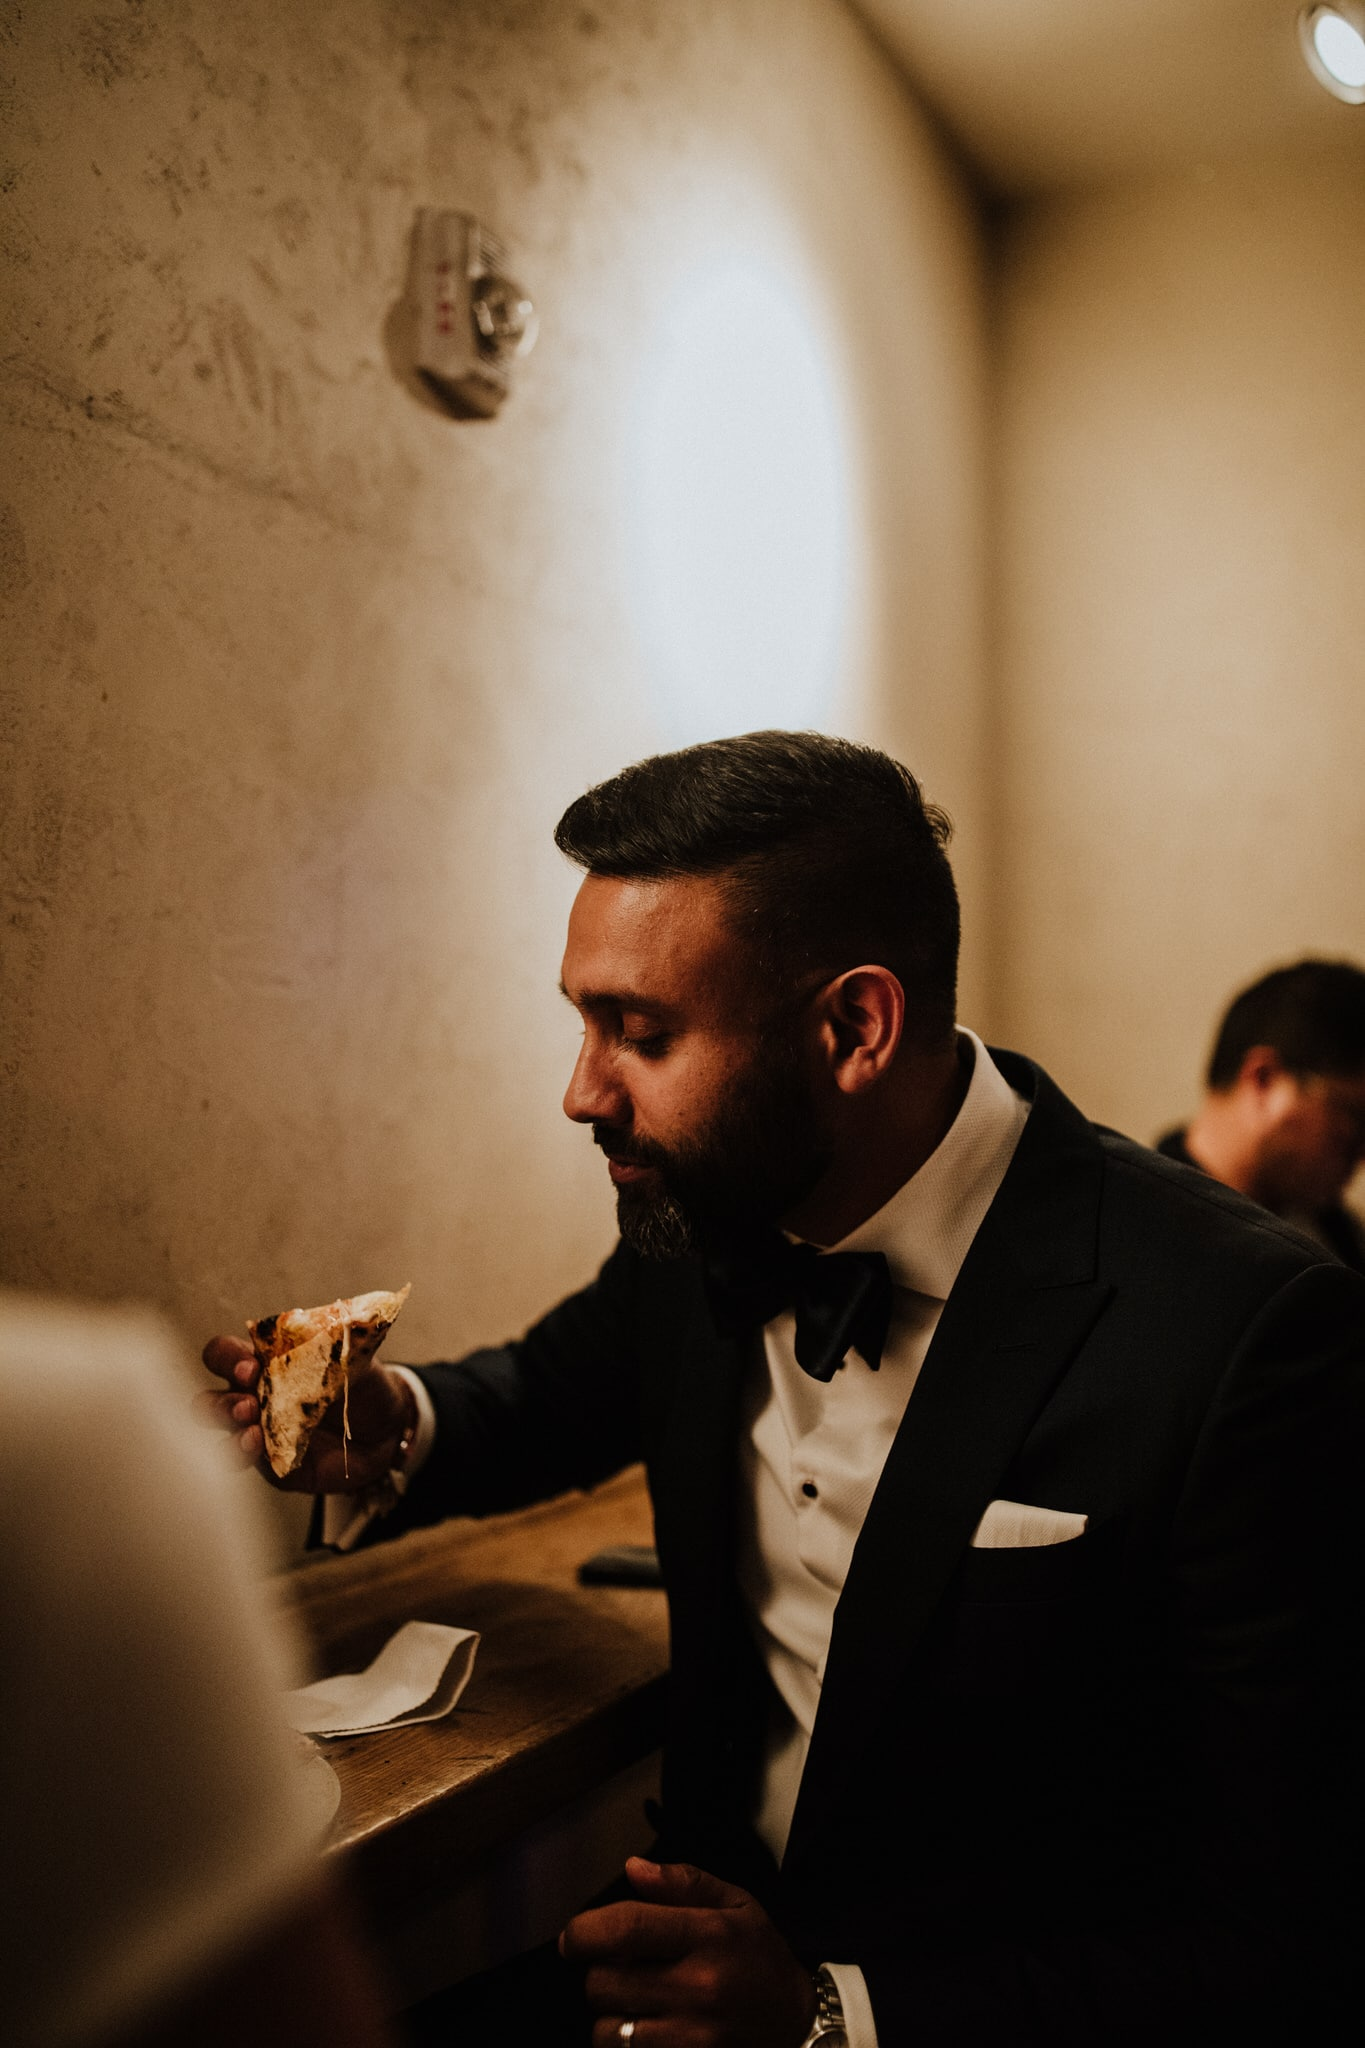 The groom at Roberta's Pizza in New York City. Wedding Photographer Brent Calis.